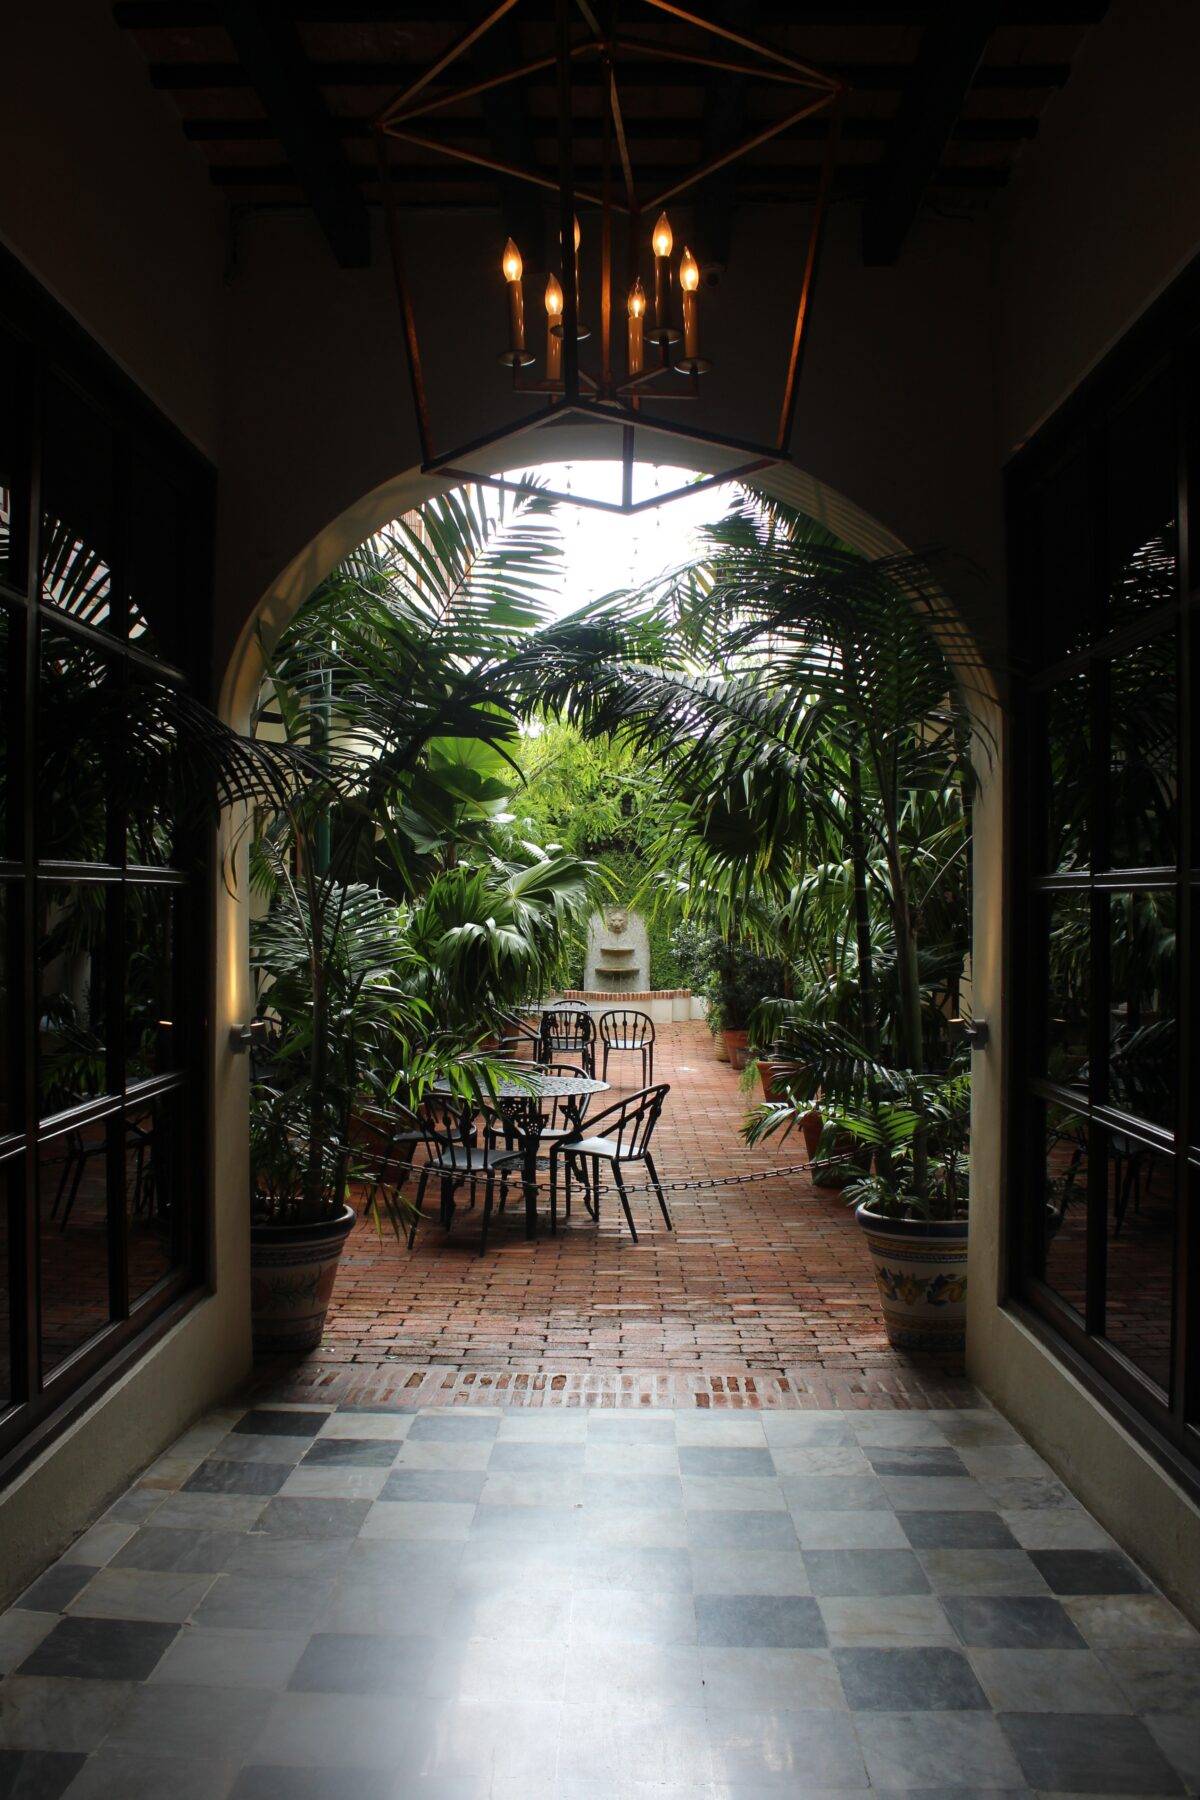 Outdoor Lighting Ideas. Design the perfect outdoor setting.